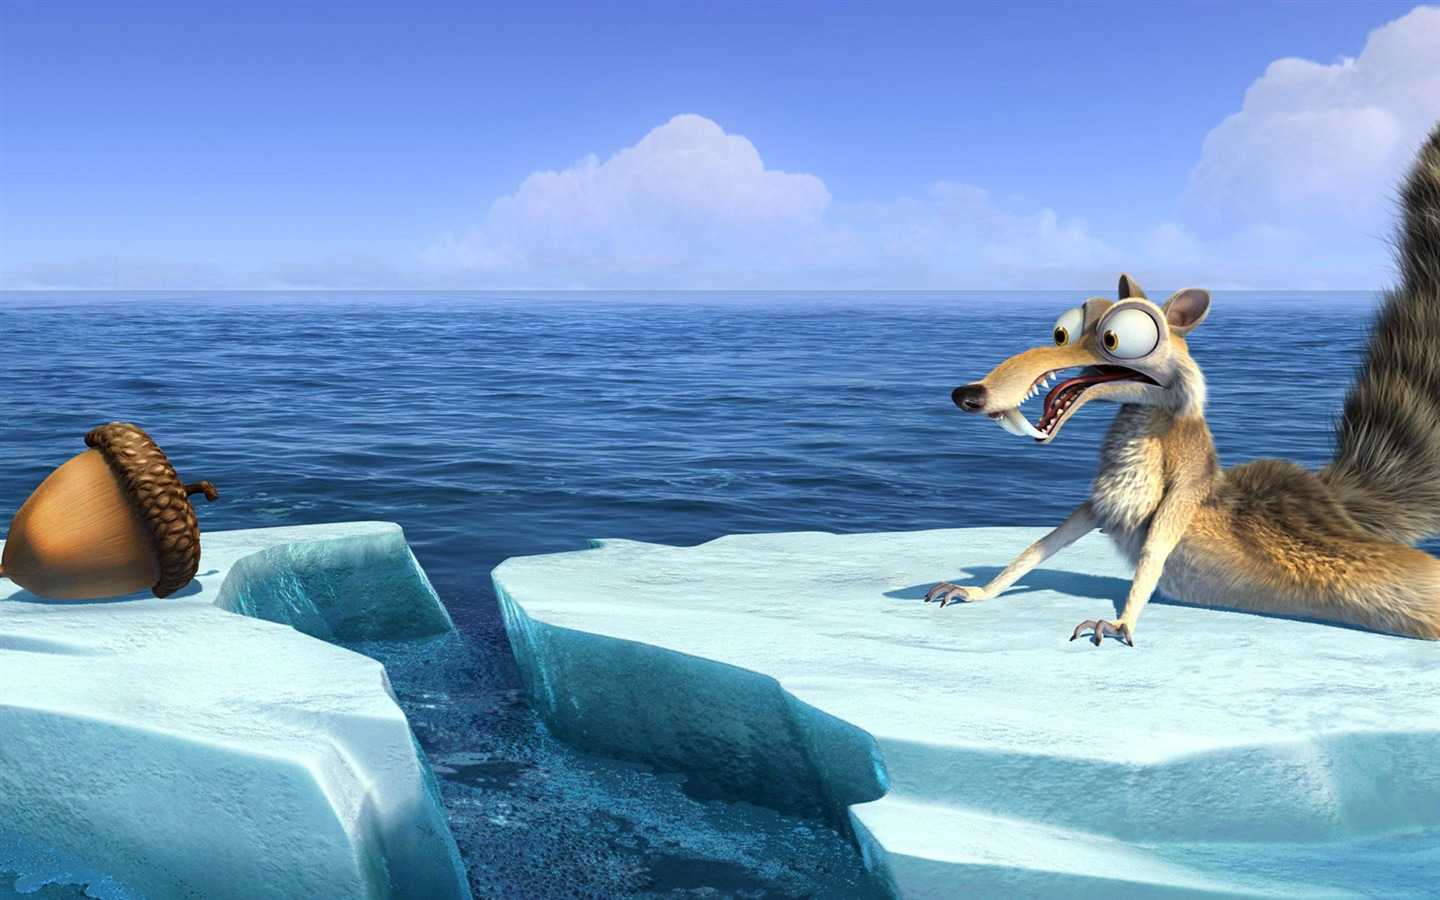 Ice Age 4-Continental Drift Movie HD Wallpaper 15 - 1440x900 wallpaper ...